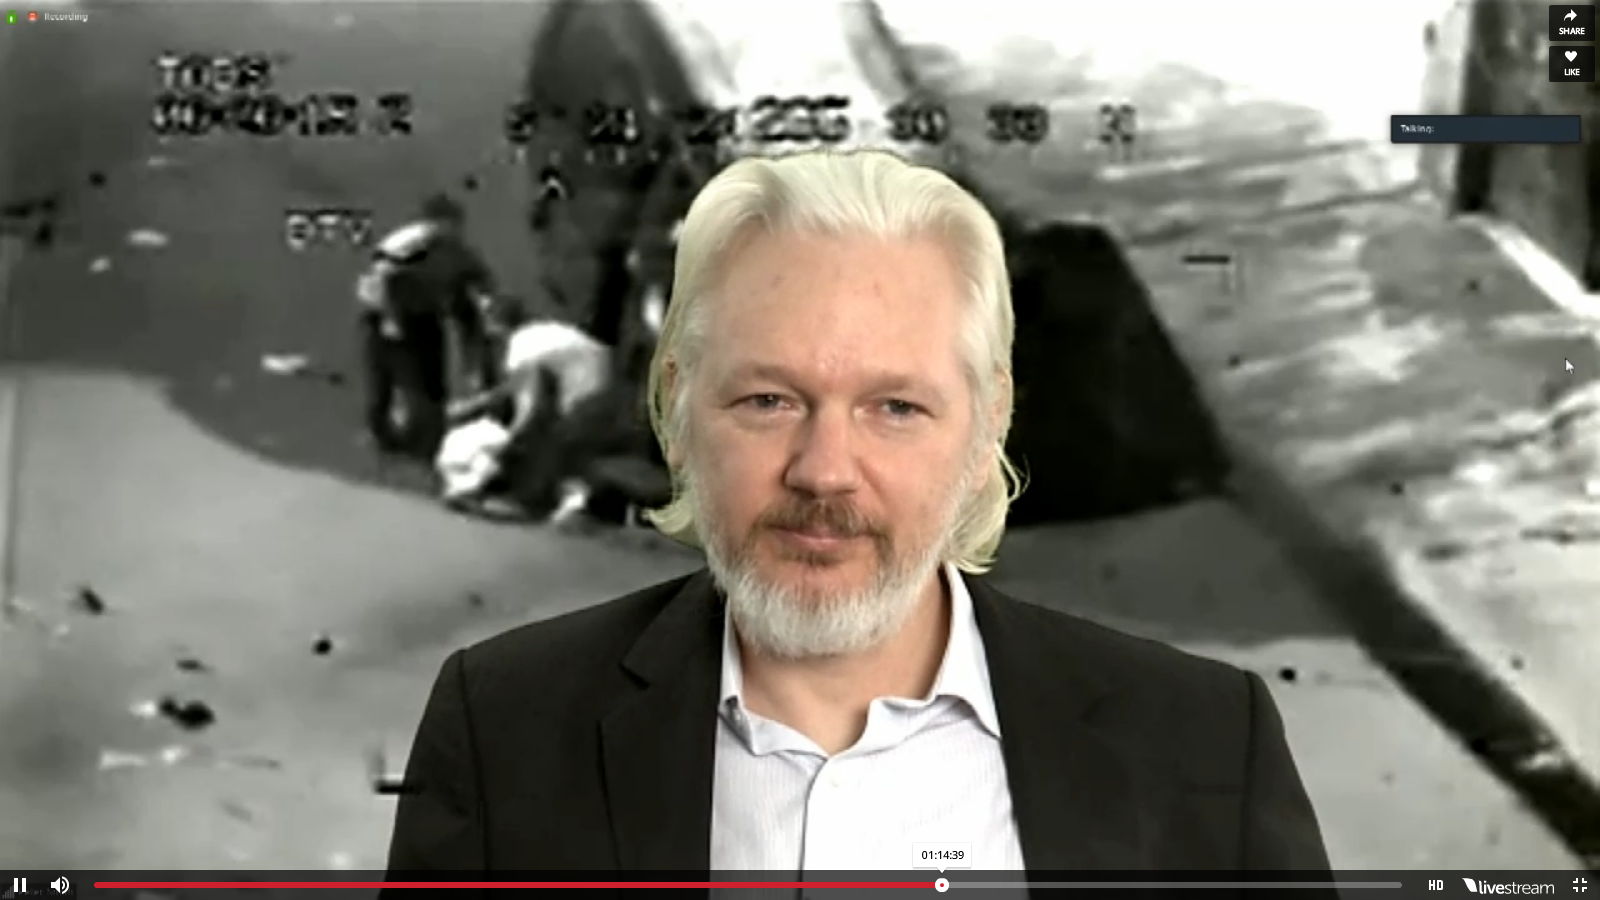 Controversial speakers like Mr Assange could be considered 'extreme' by Prevent, and would either be censored or banned in future appearances